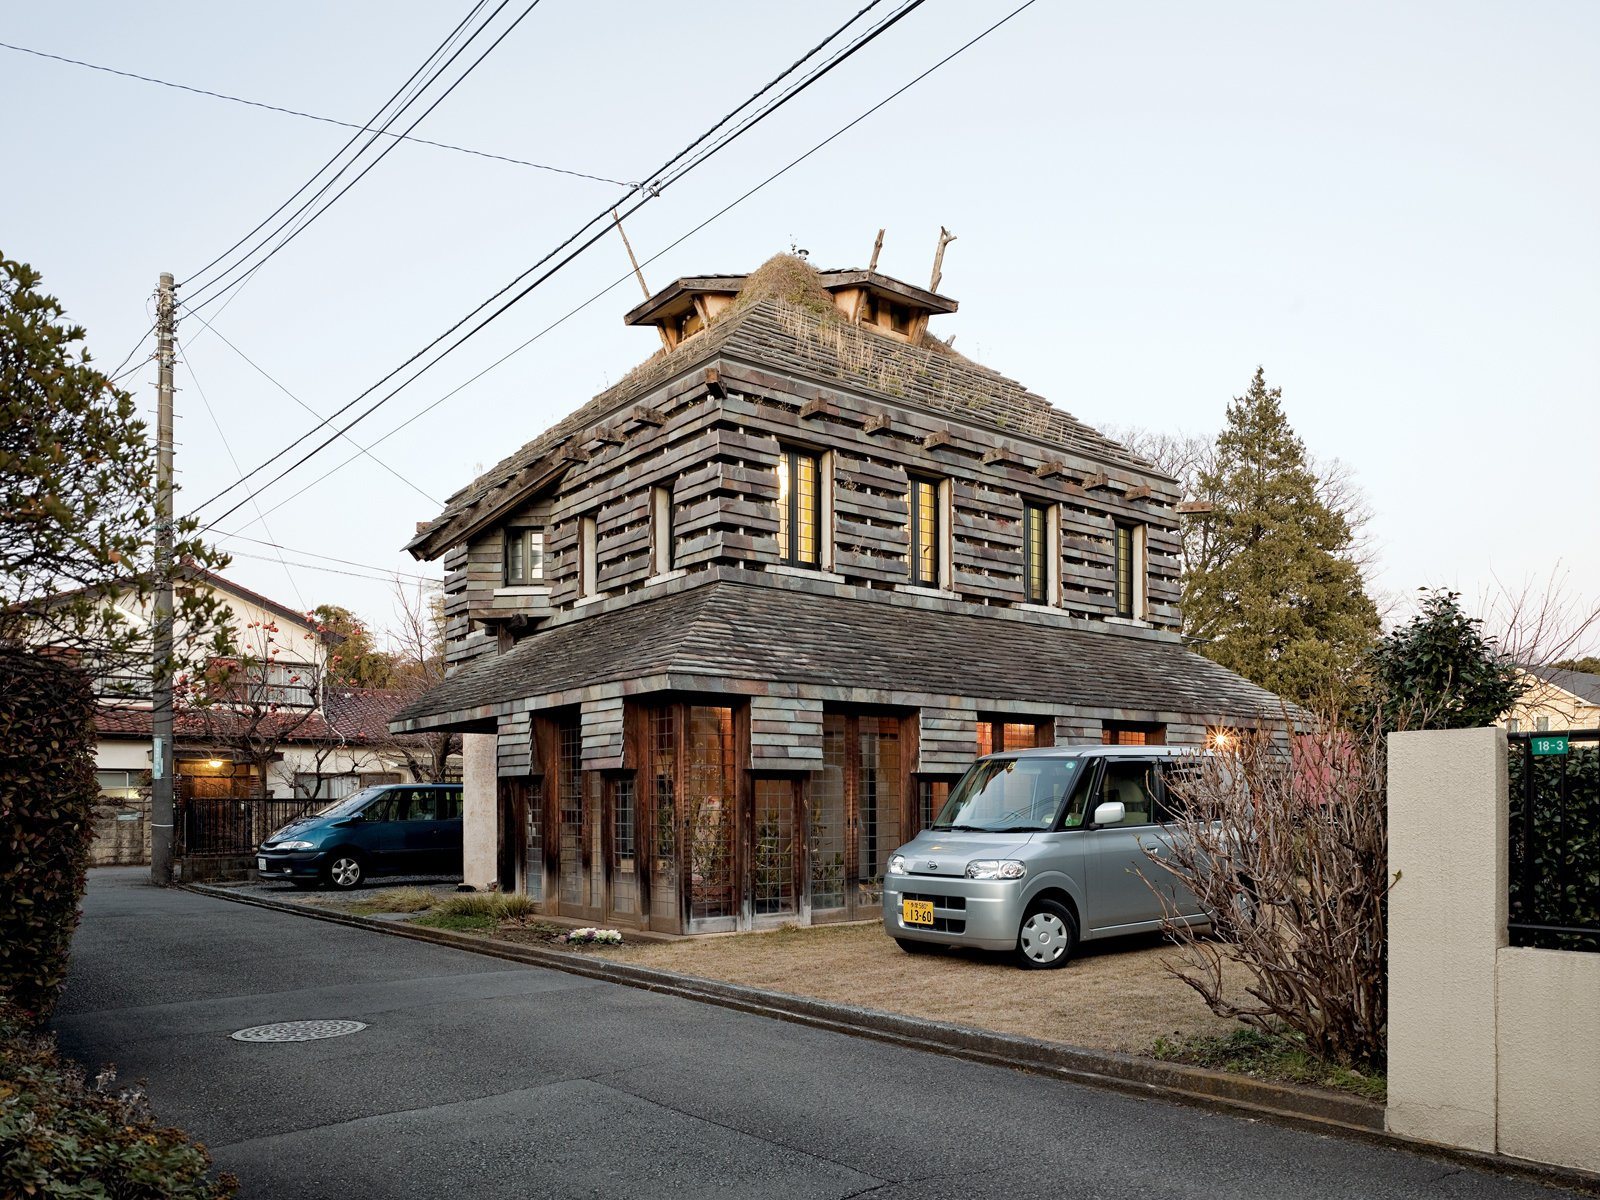 """Fujimori designed his own residence, the Tanpopo House, in 1995, with volcanic rock siding and grass and dandelions on the roof and walls; he is pleased by its """"bushy-haired expression.""""  Photo 7 of 23 in Terunobu Fujimori"""